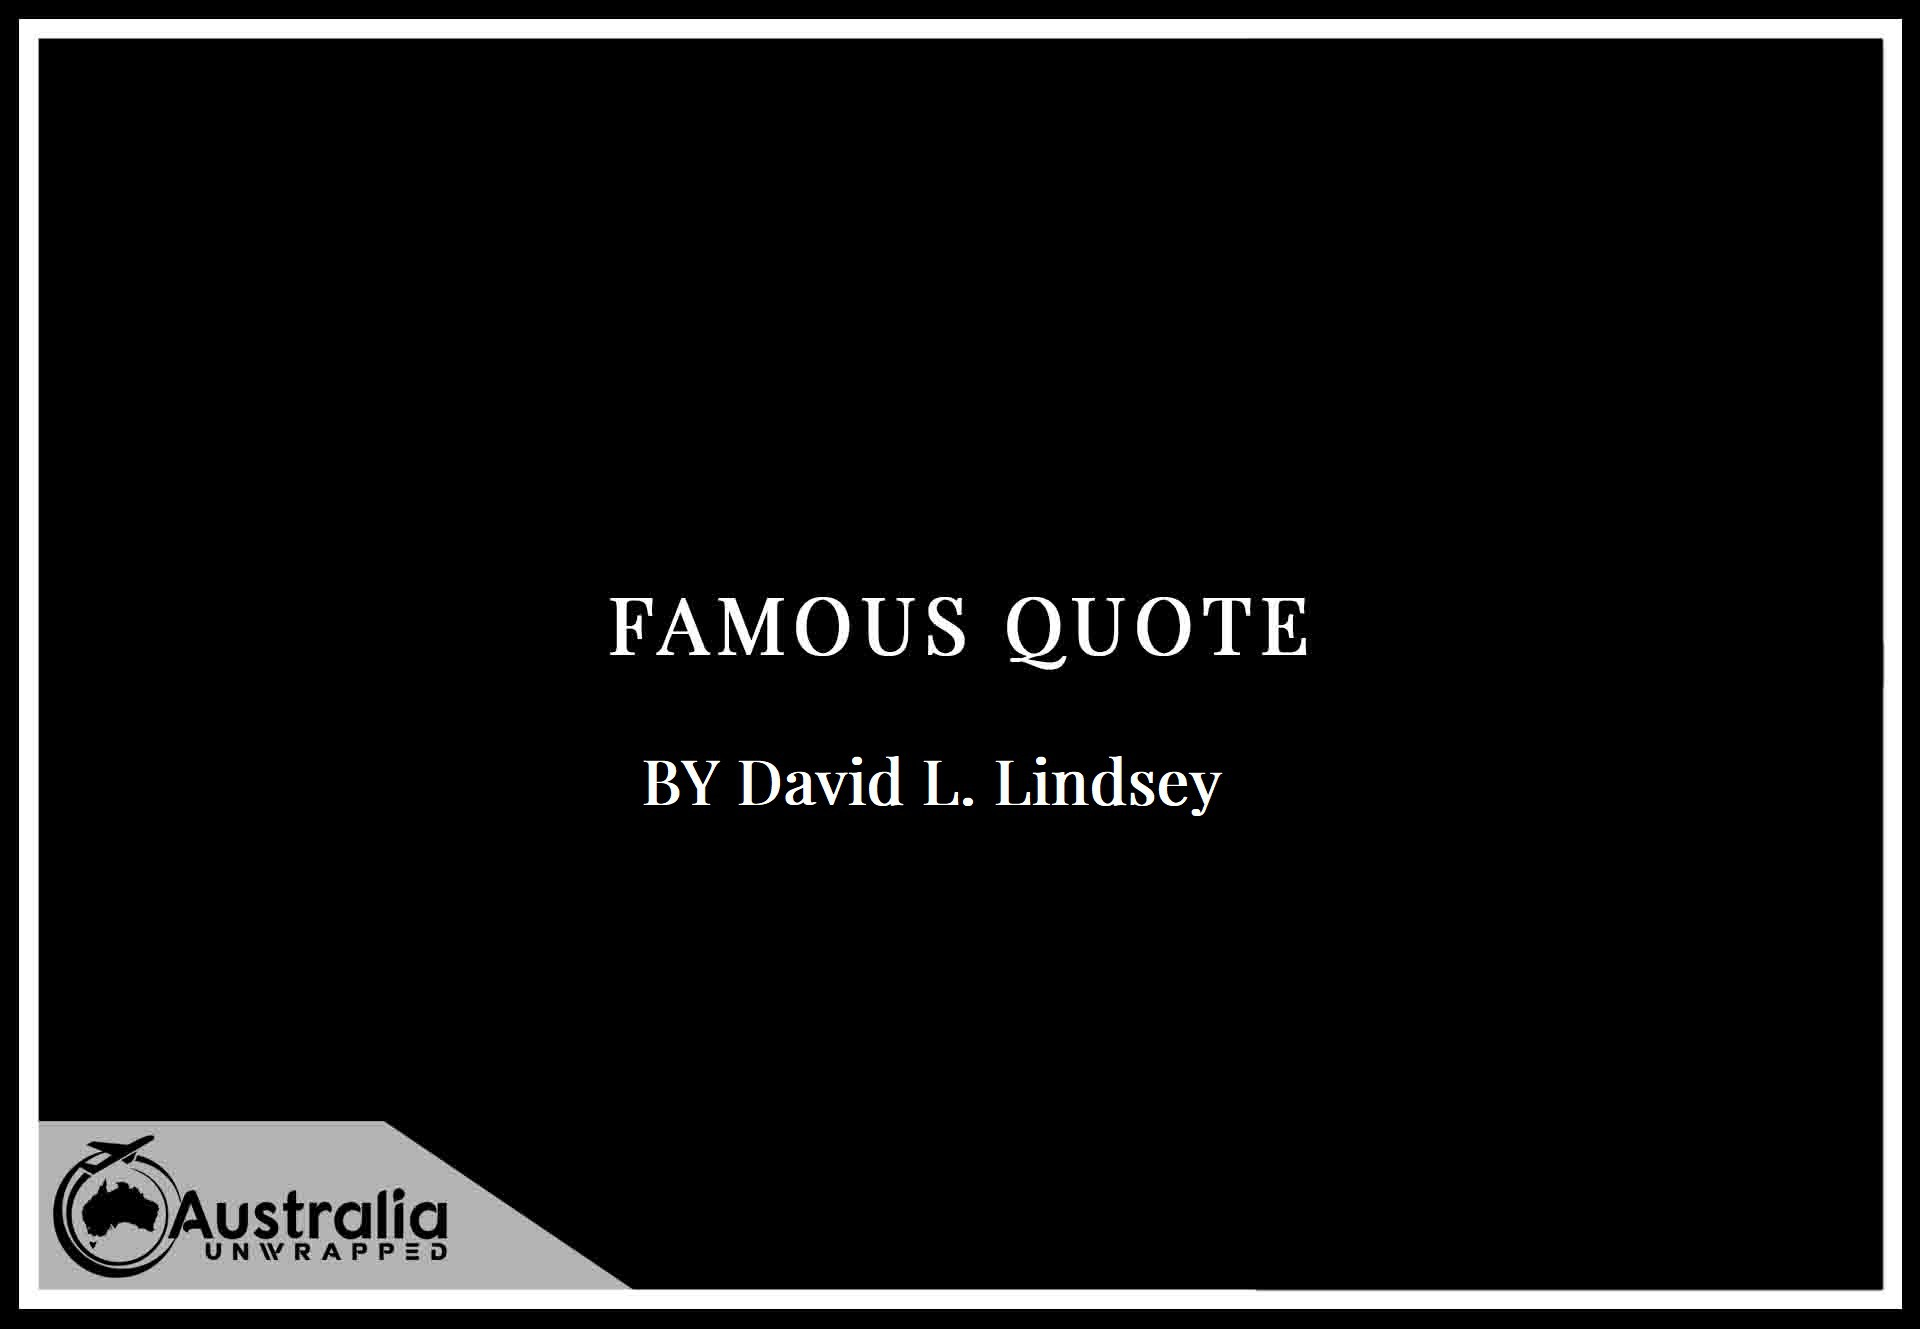 Top 1 Famous Quotes by Author David L. Lindsey